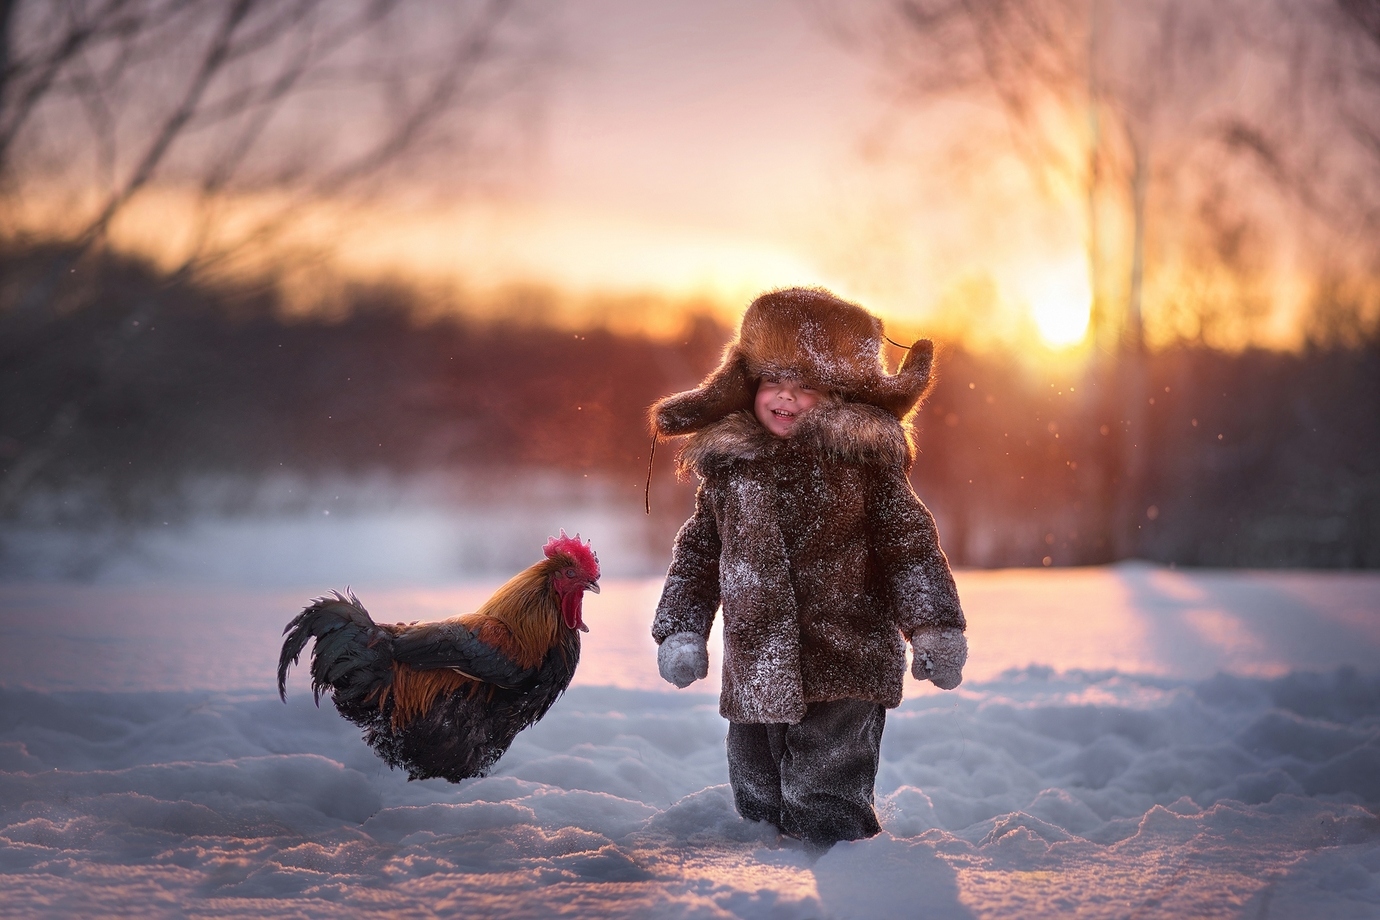 Childhood in the village by Elena Mironova, Russia Federation